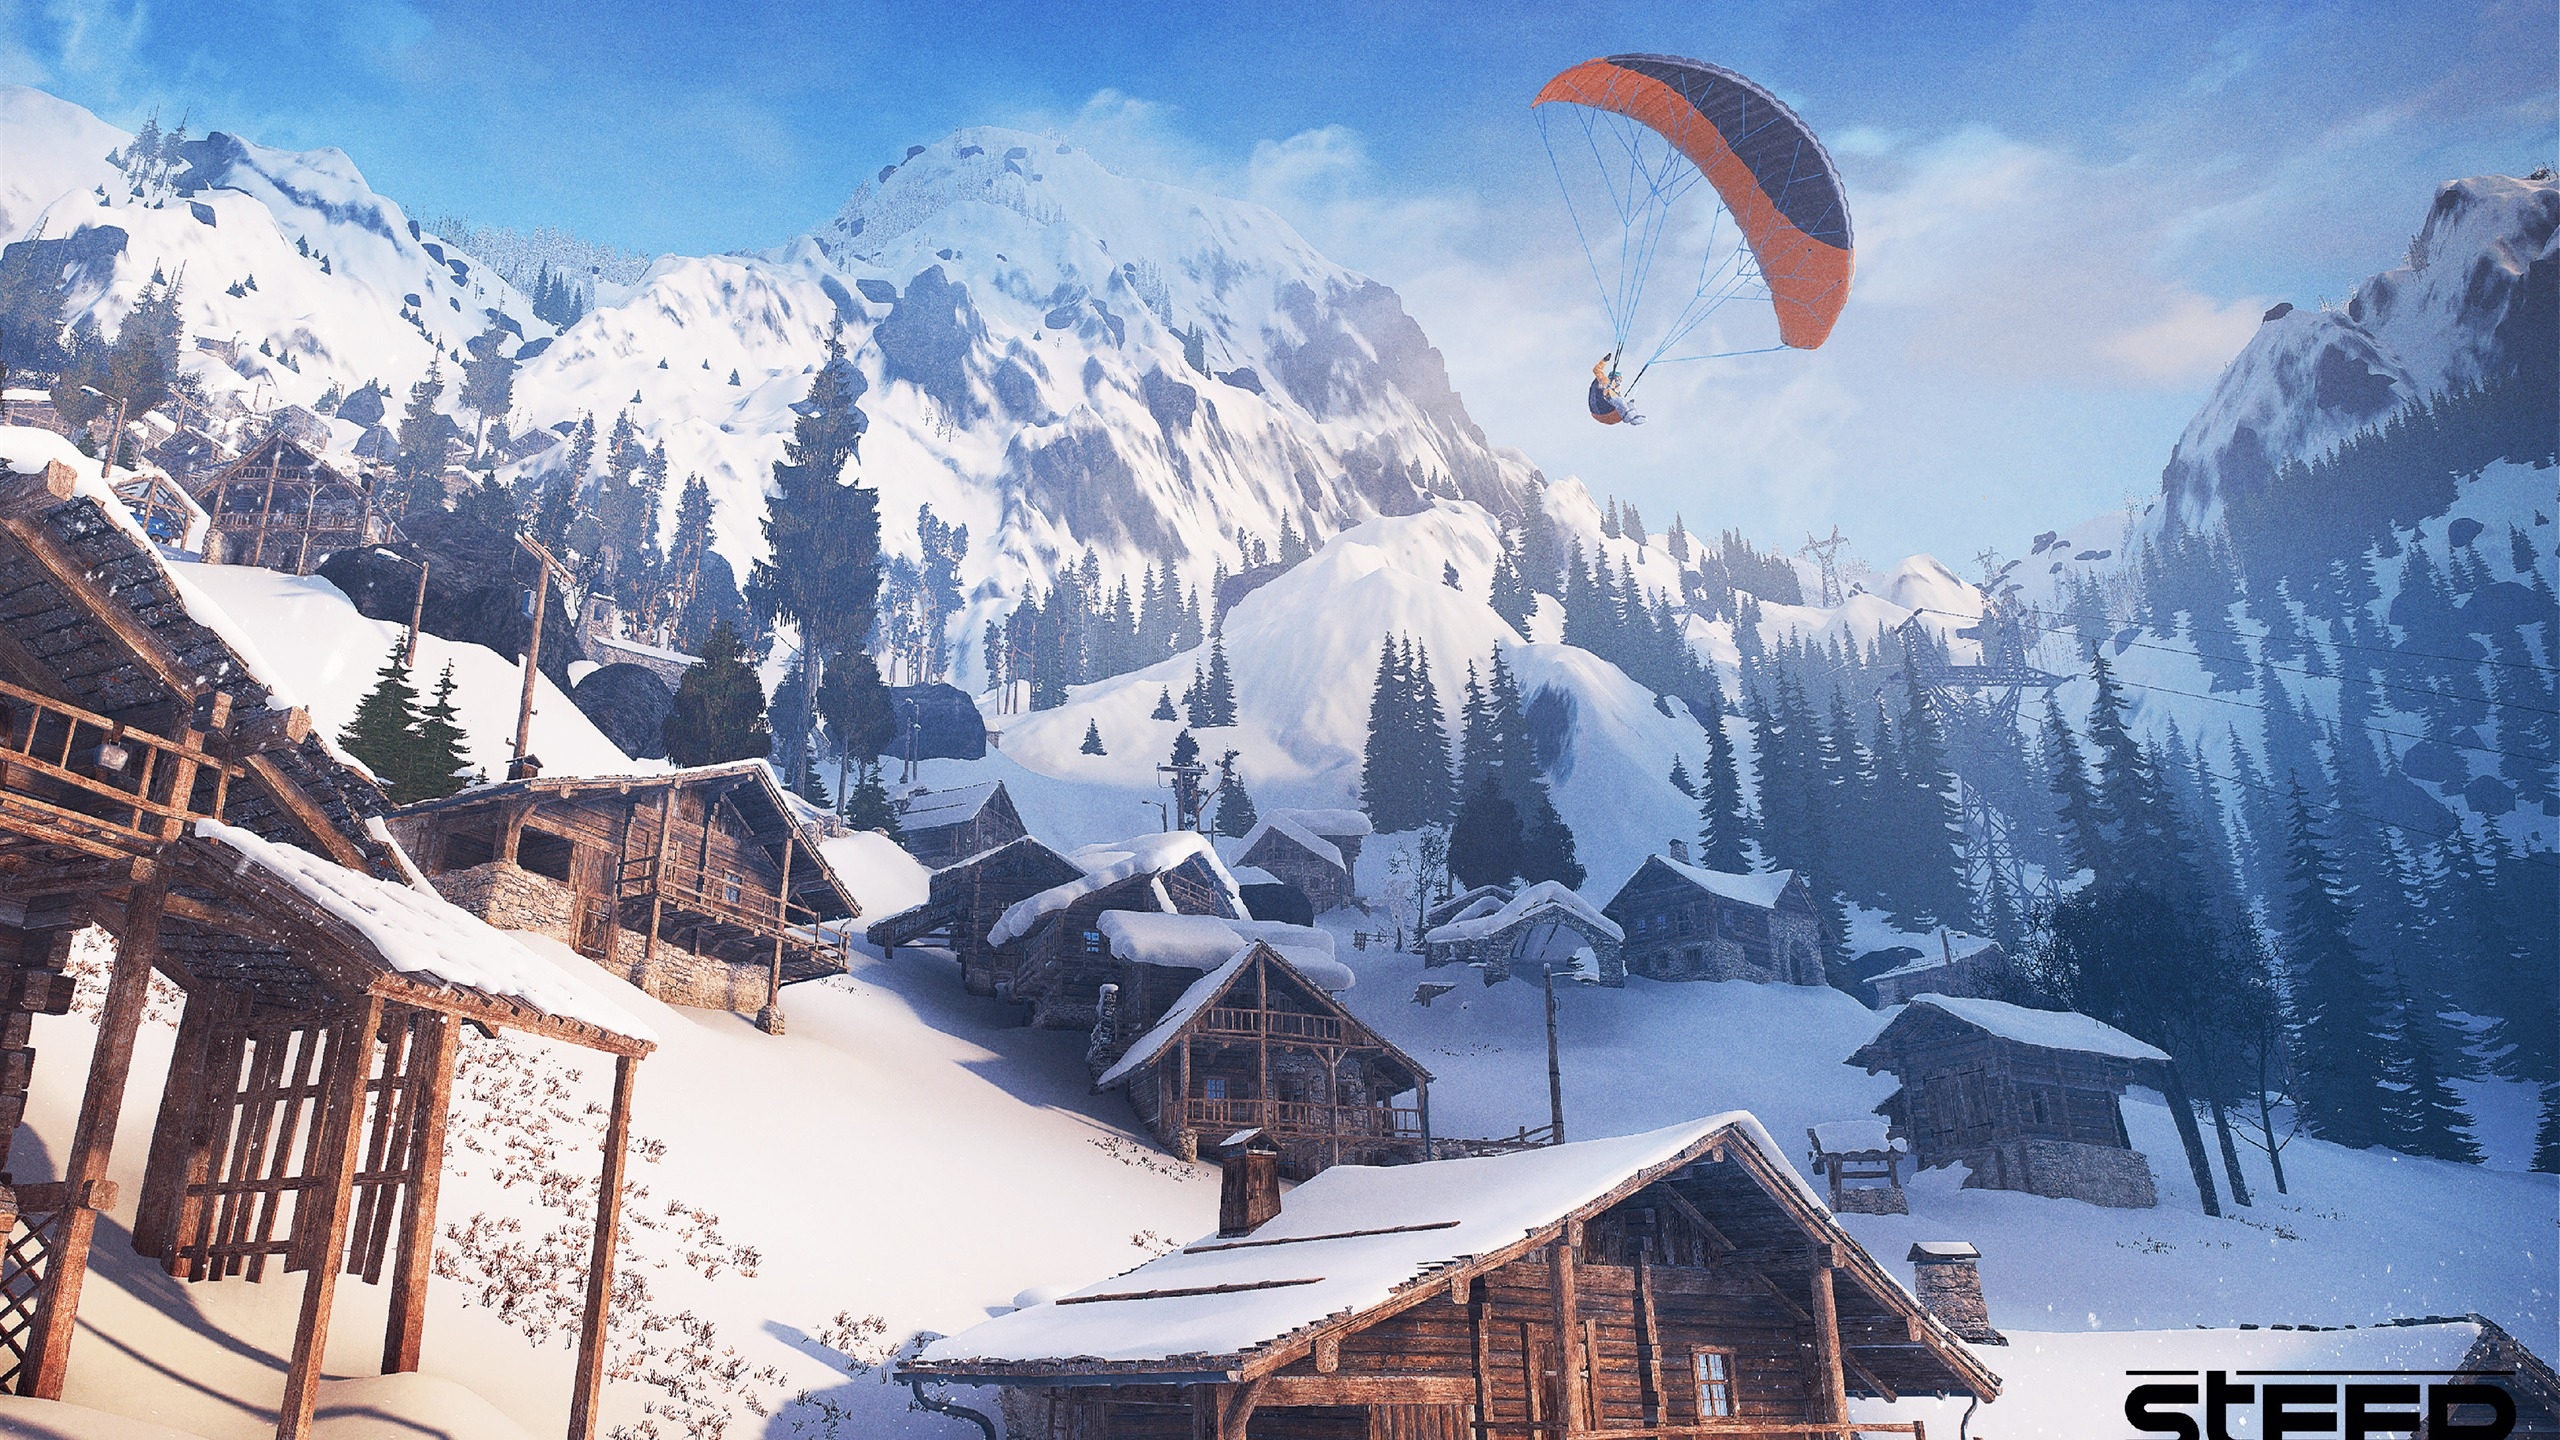 Steep Game 4K Ultra HD - 2560x1440 wallpaper download